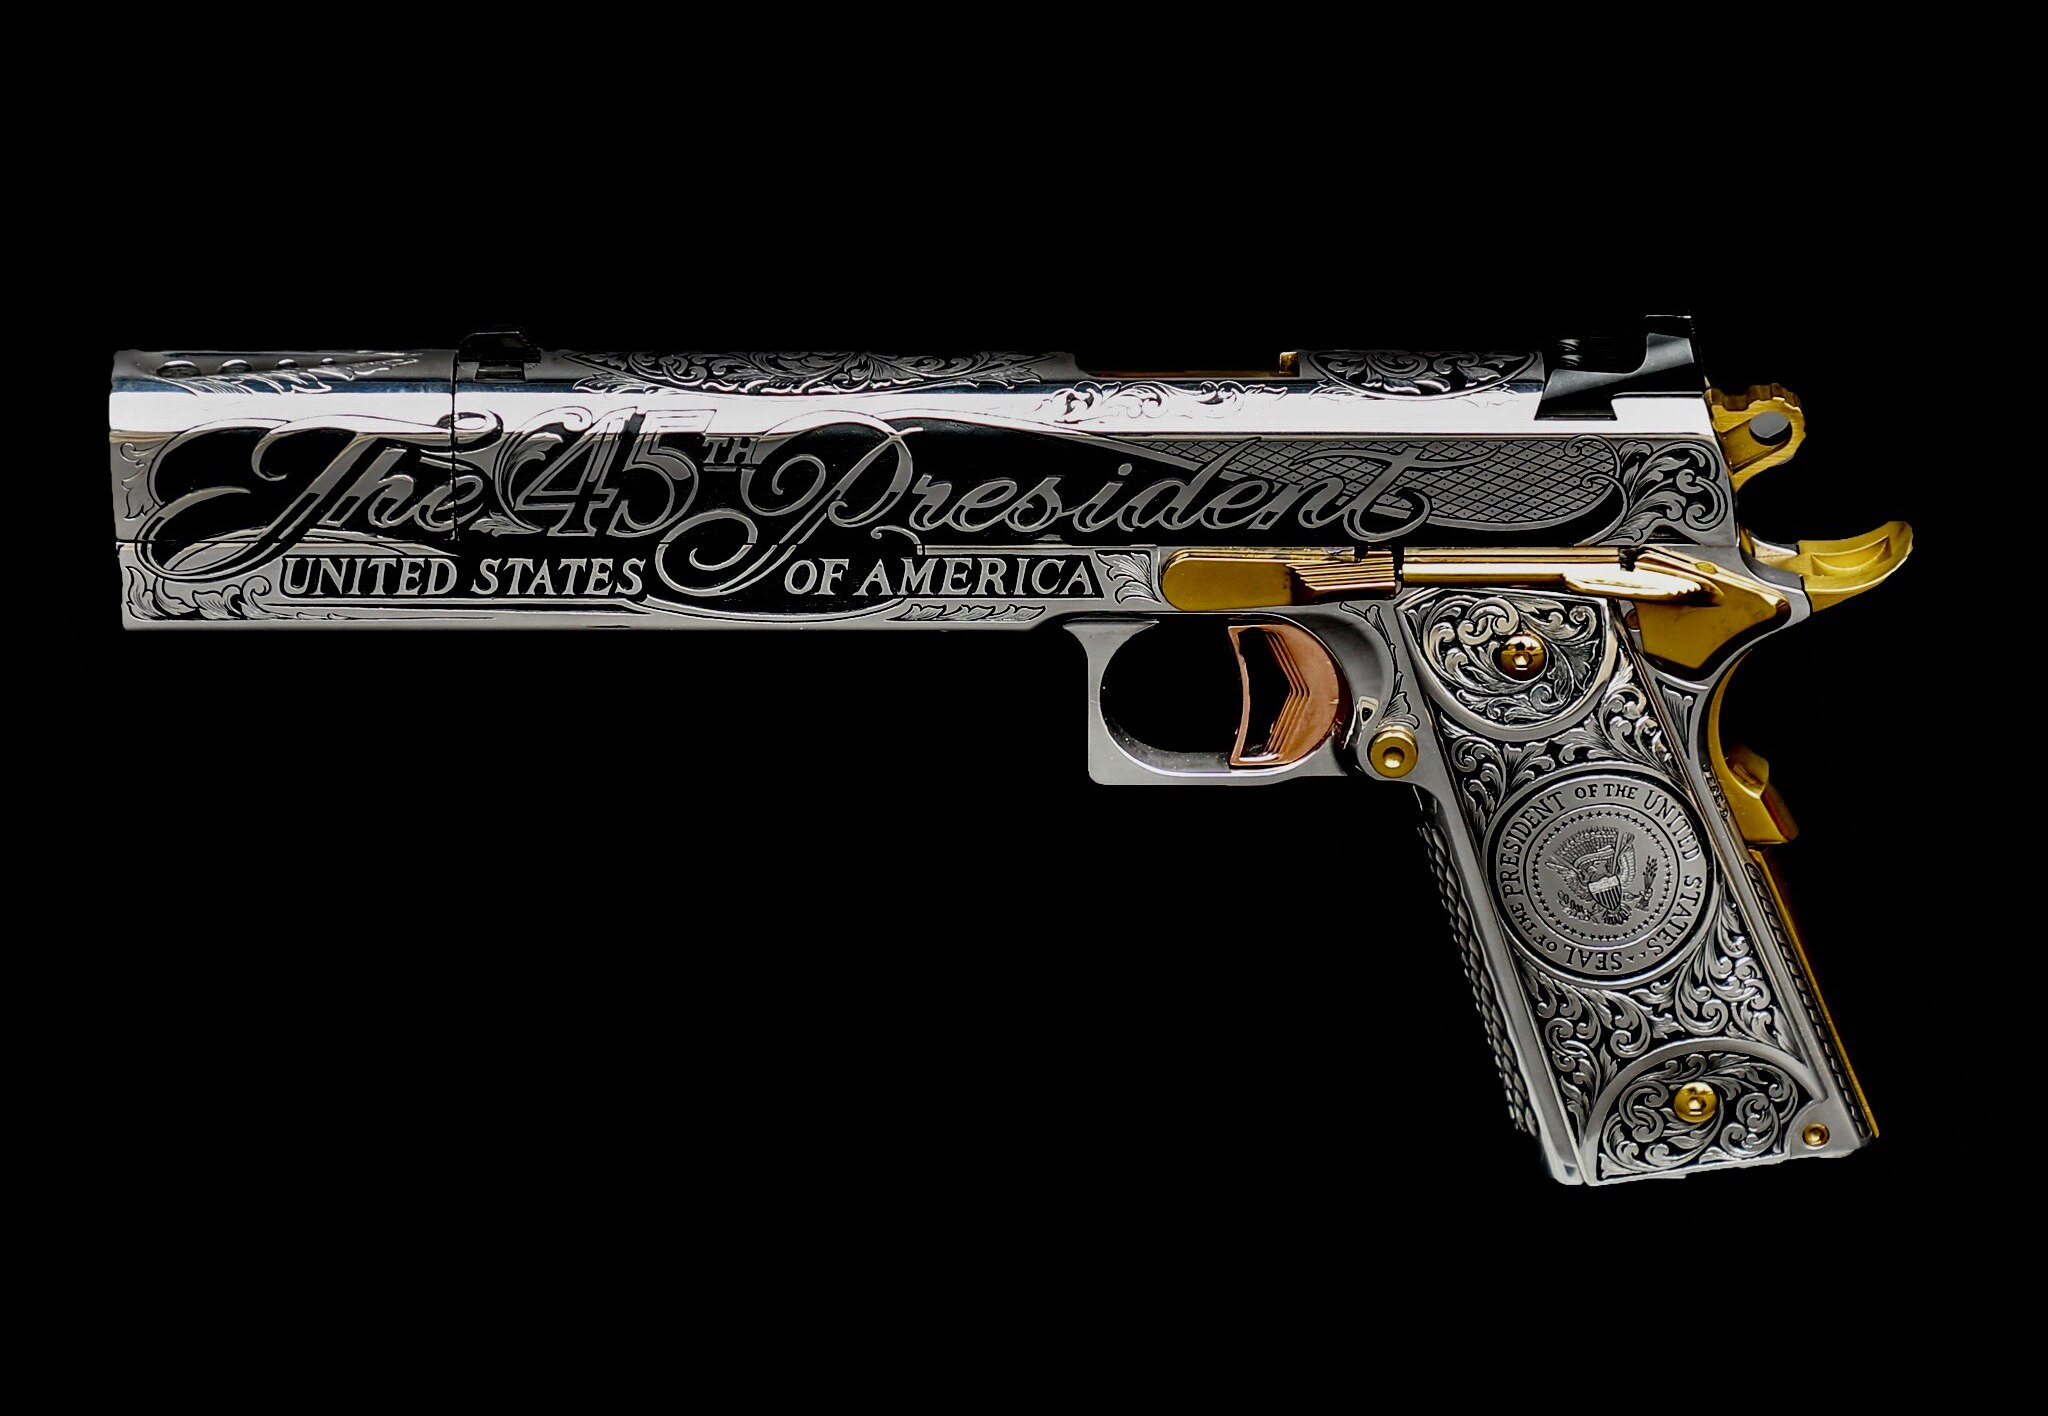 The custom-made Donald Trump Gun by Jesse James. (Photo: Jesse James Firearms Unlimited)